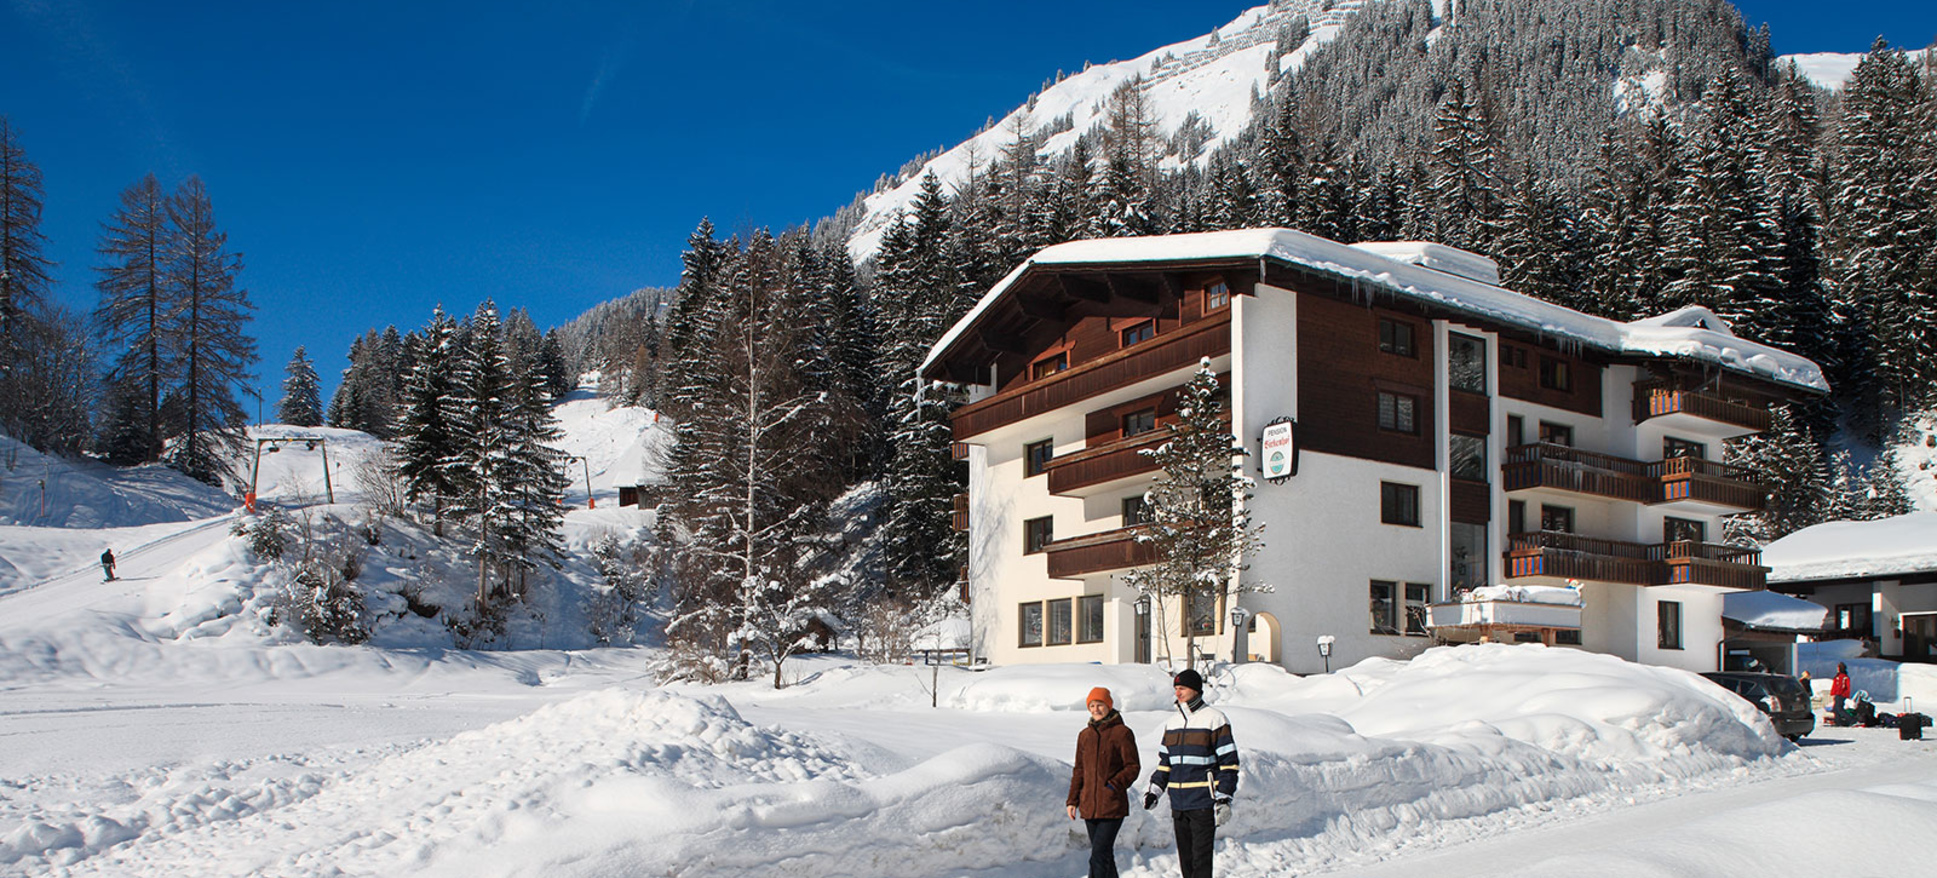 AUSTRIA PENSION (KAPRUN) Pens